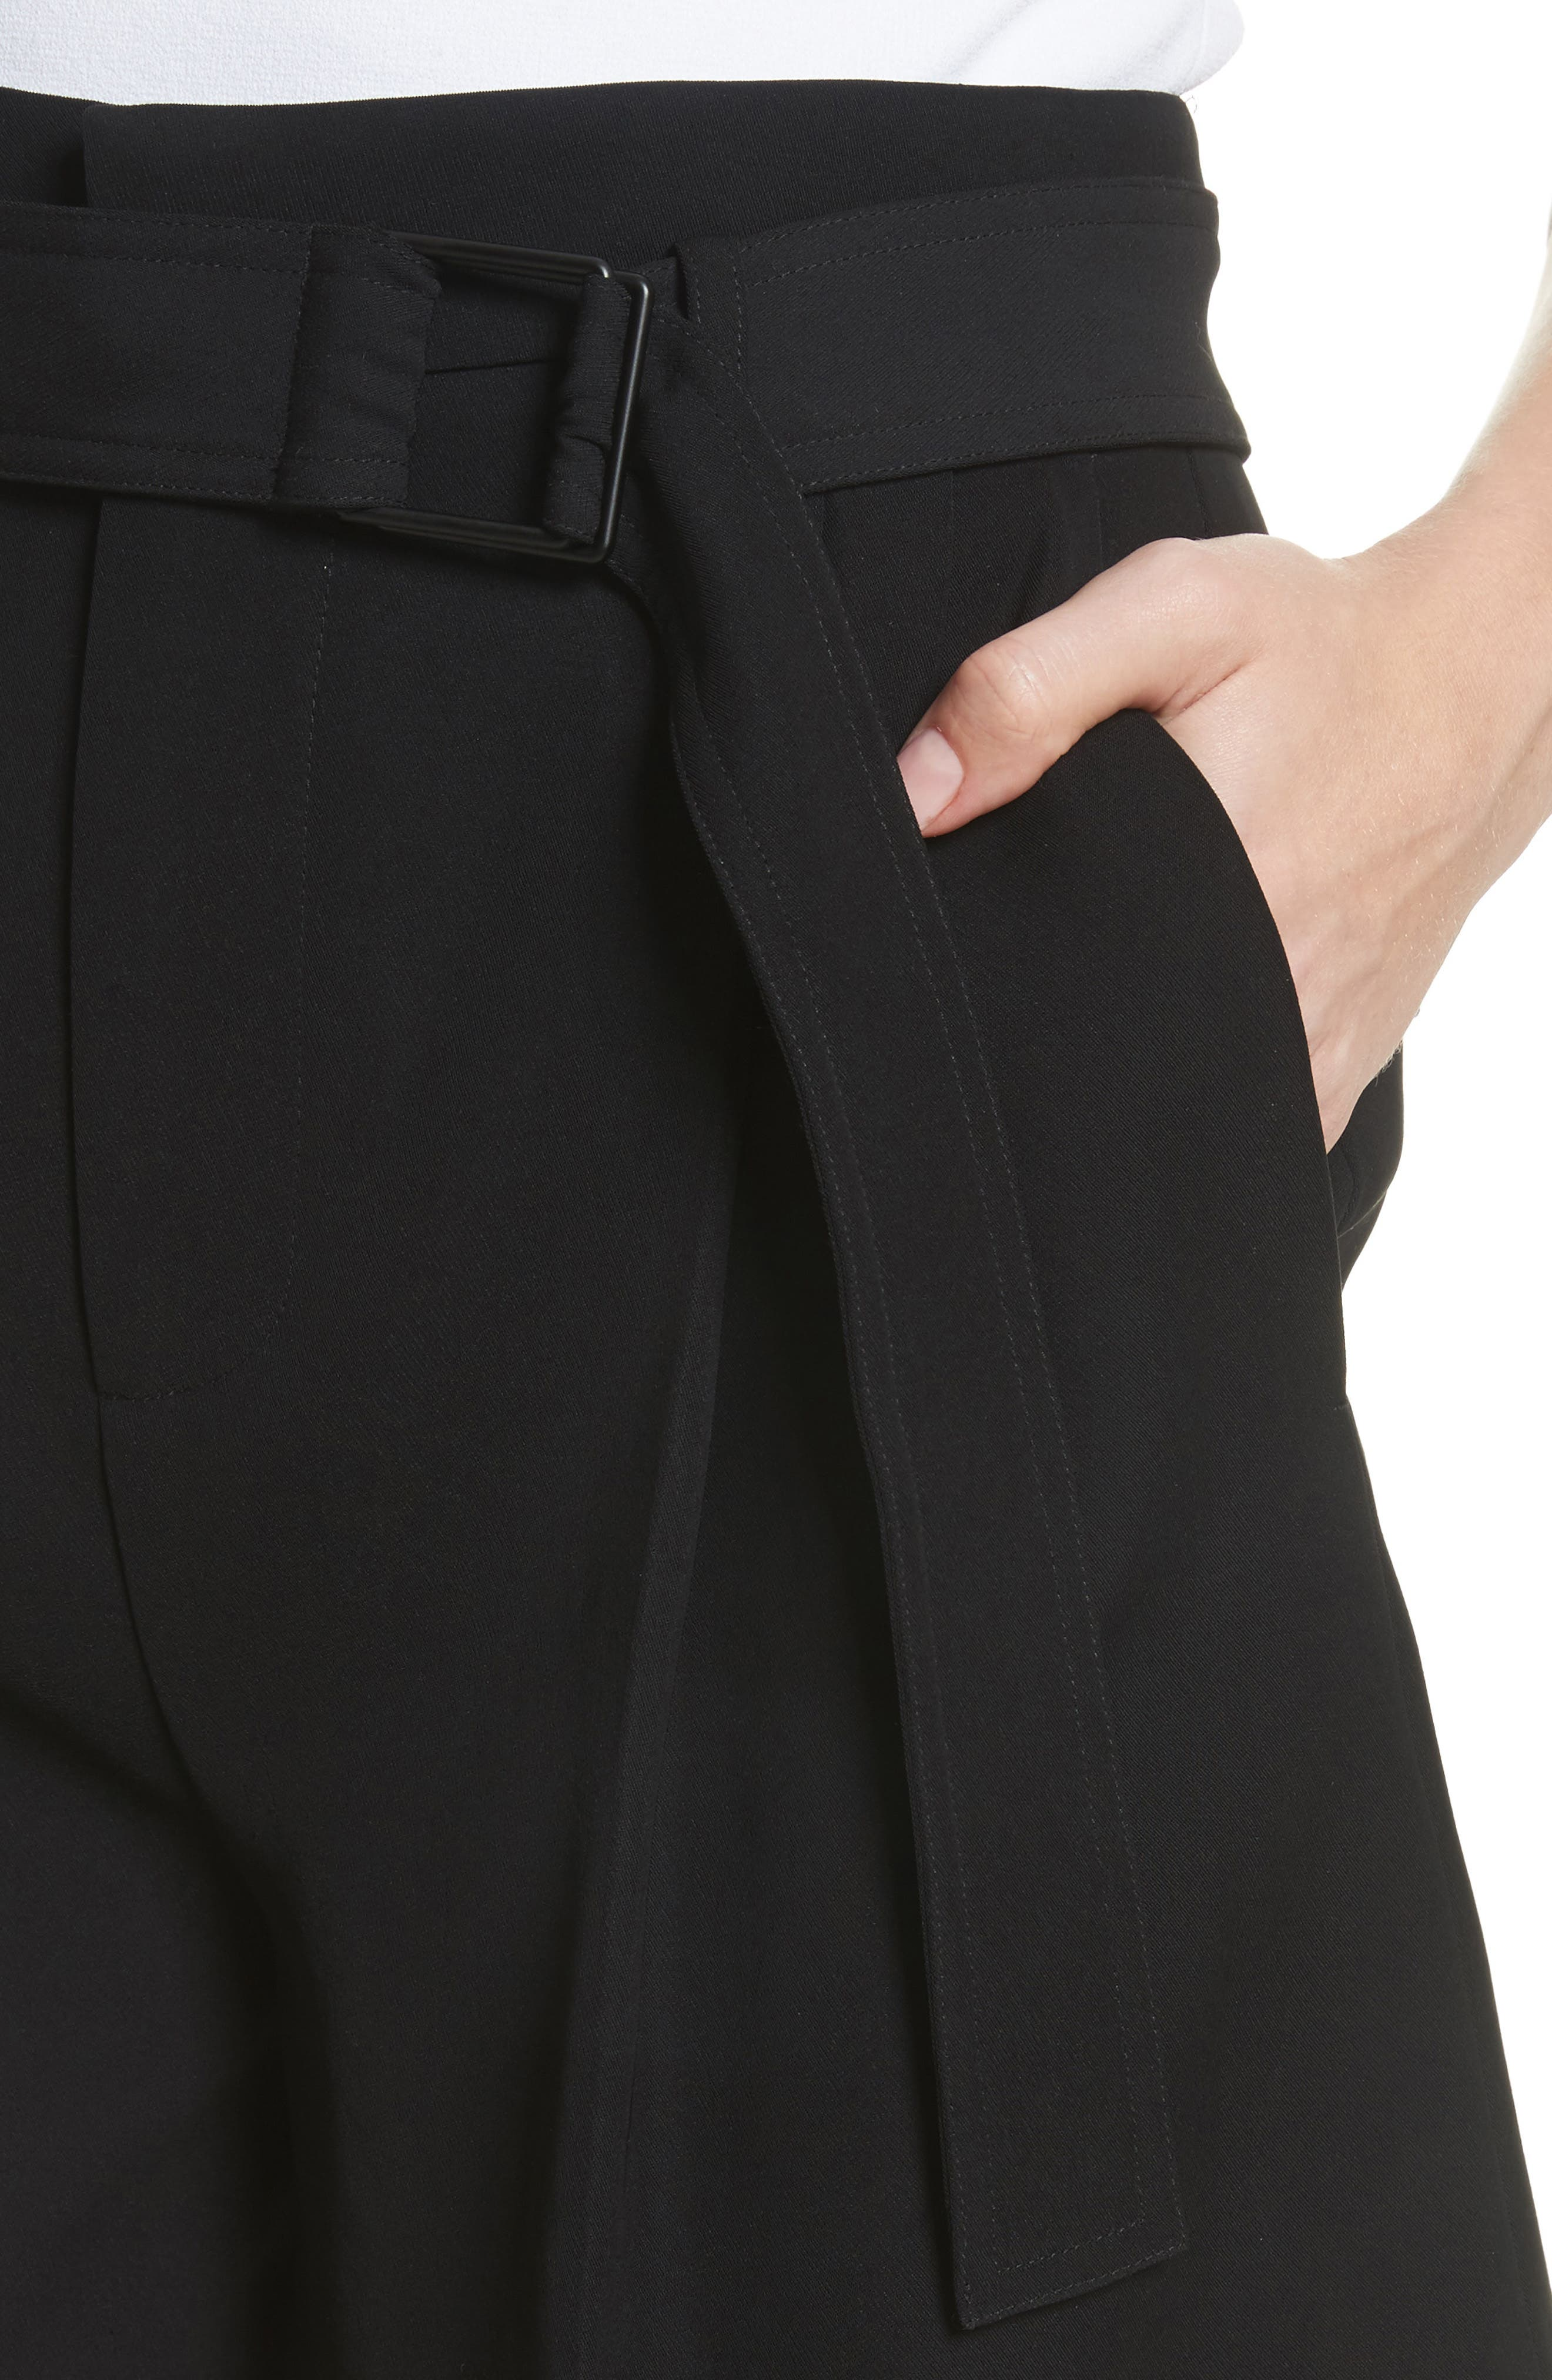 Belted Shorts,                             Alternate thumbnail 4, color,                             001